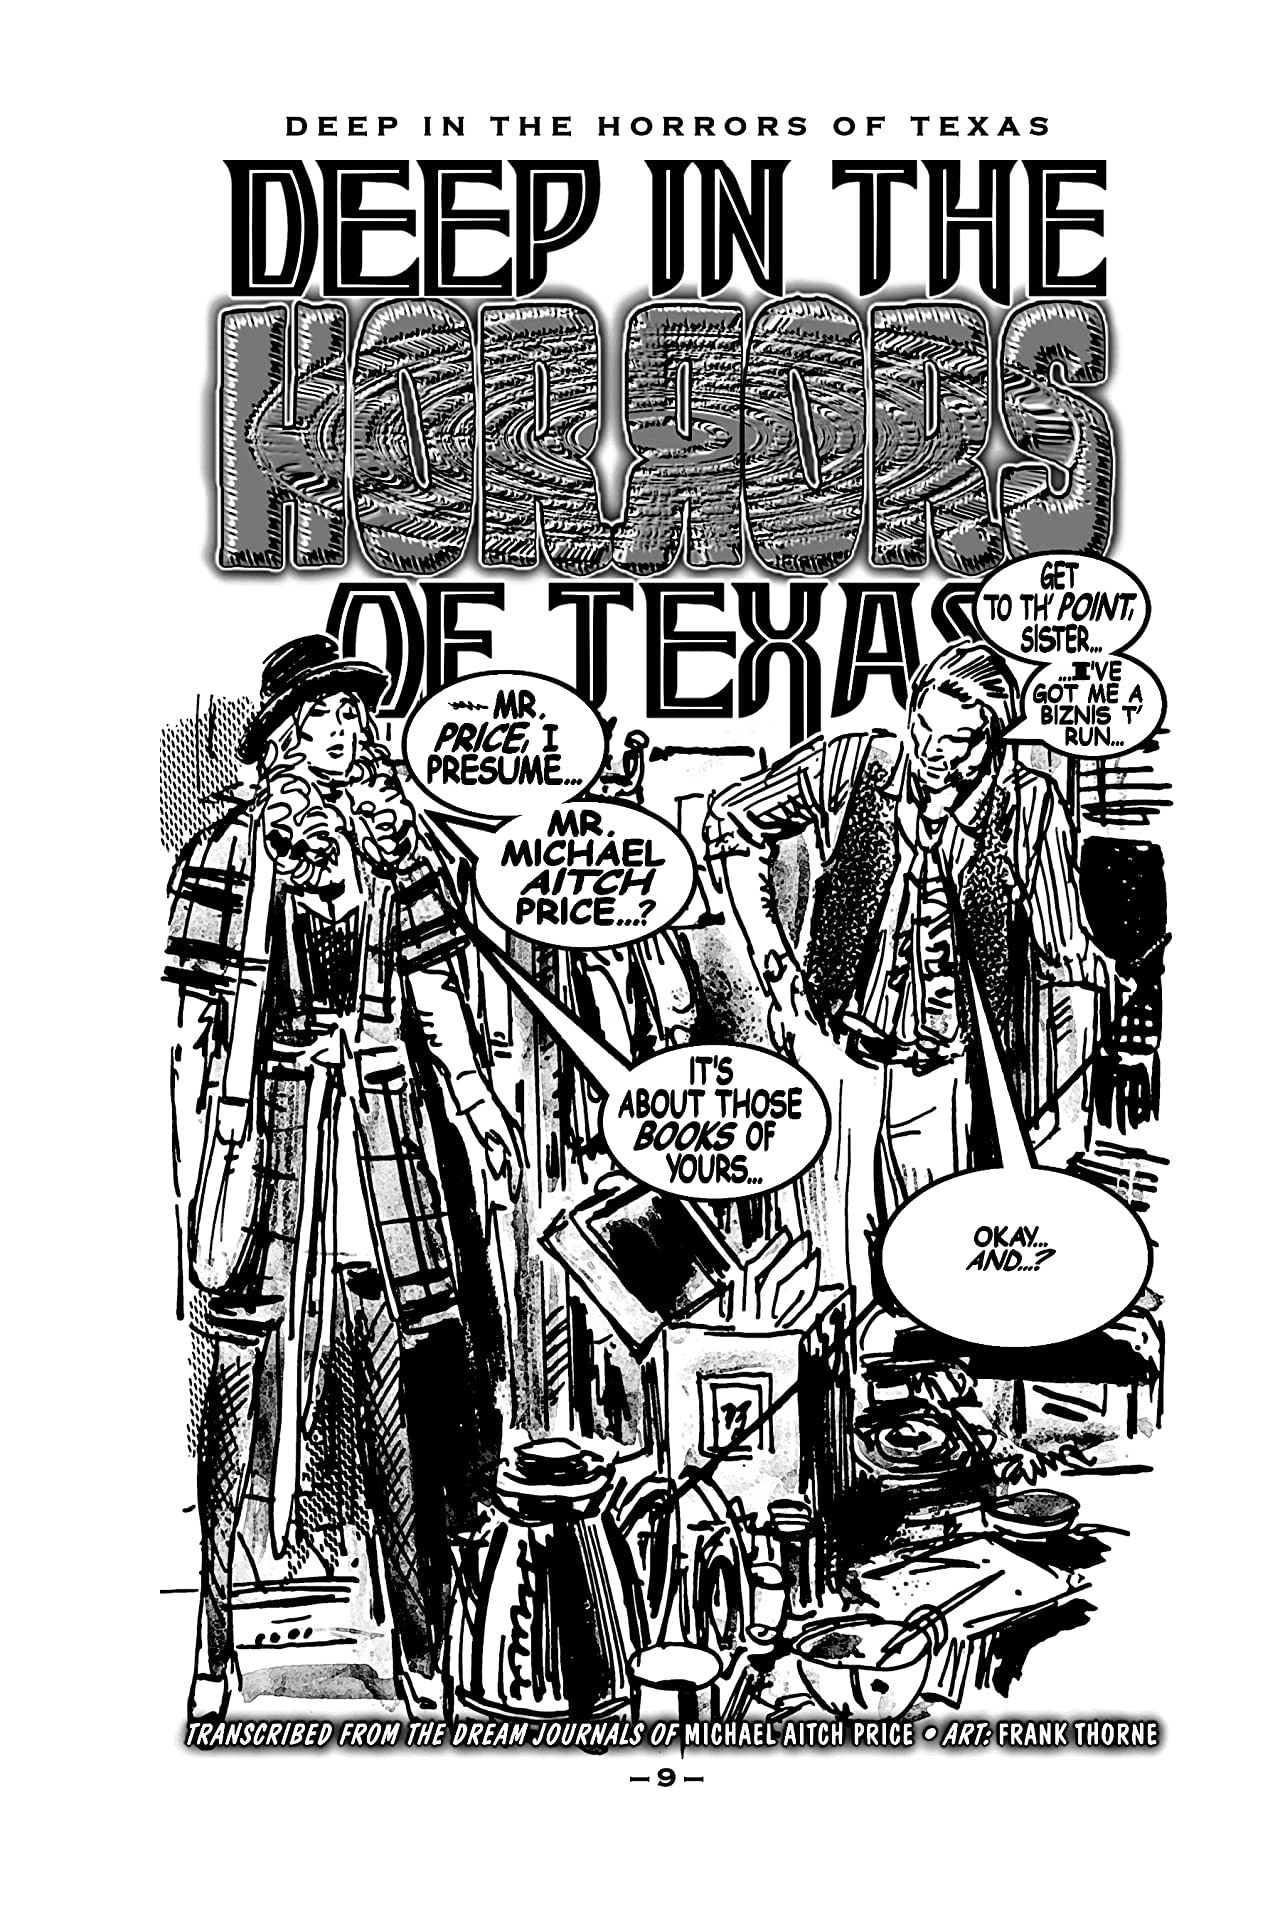 Deep in the Horrors of Texas: Comics from the Gone World